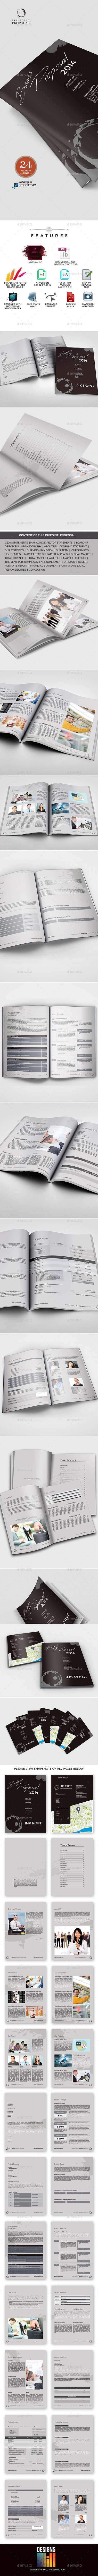 InkPoint Business Proposal Template - Proposals & Invoices Stationery